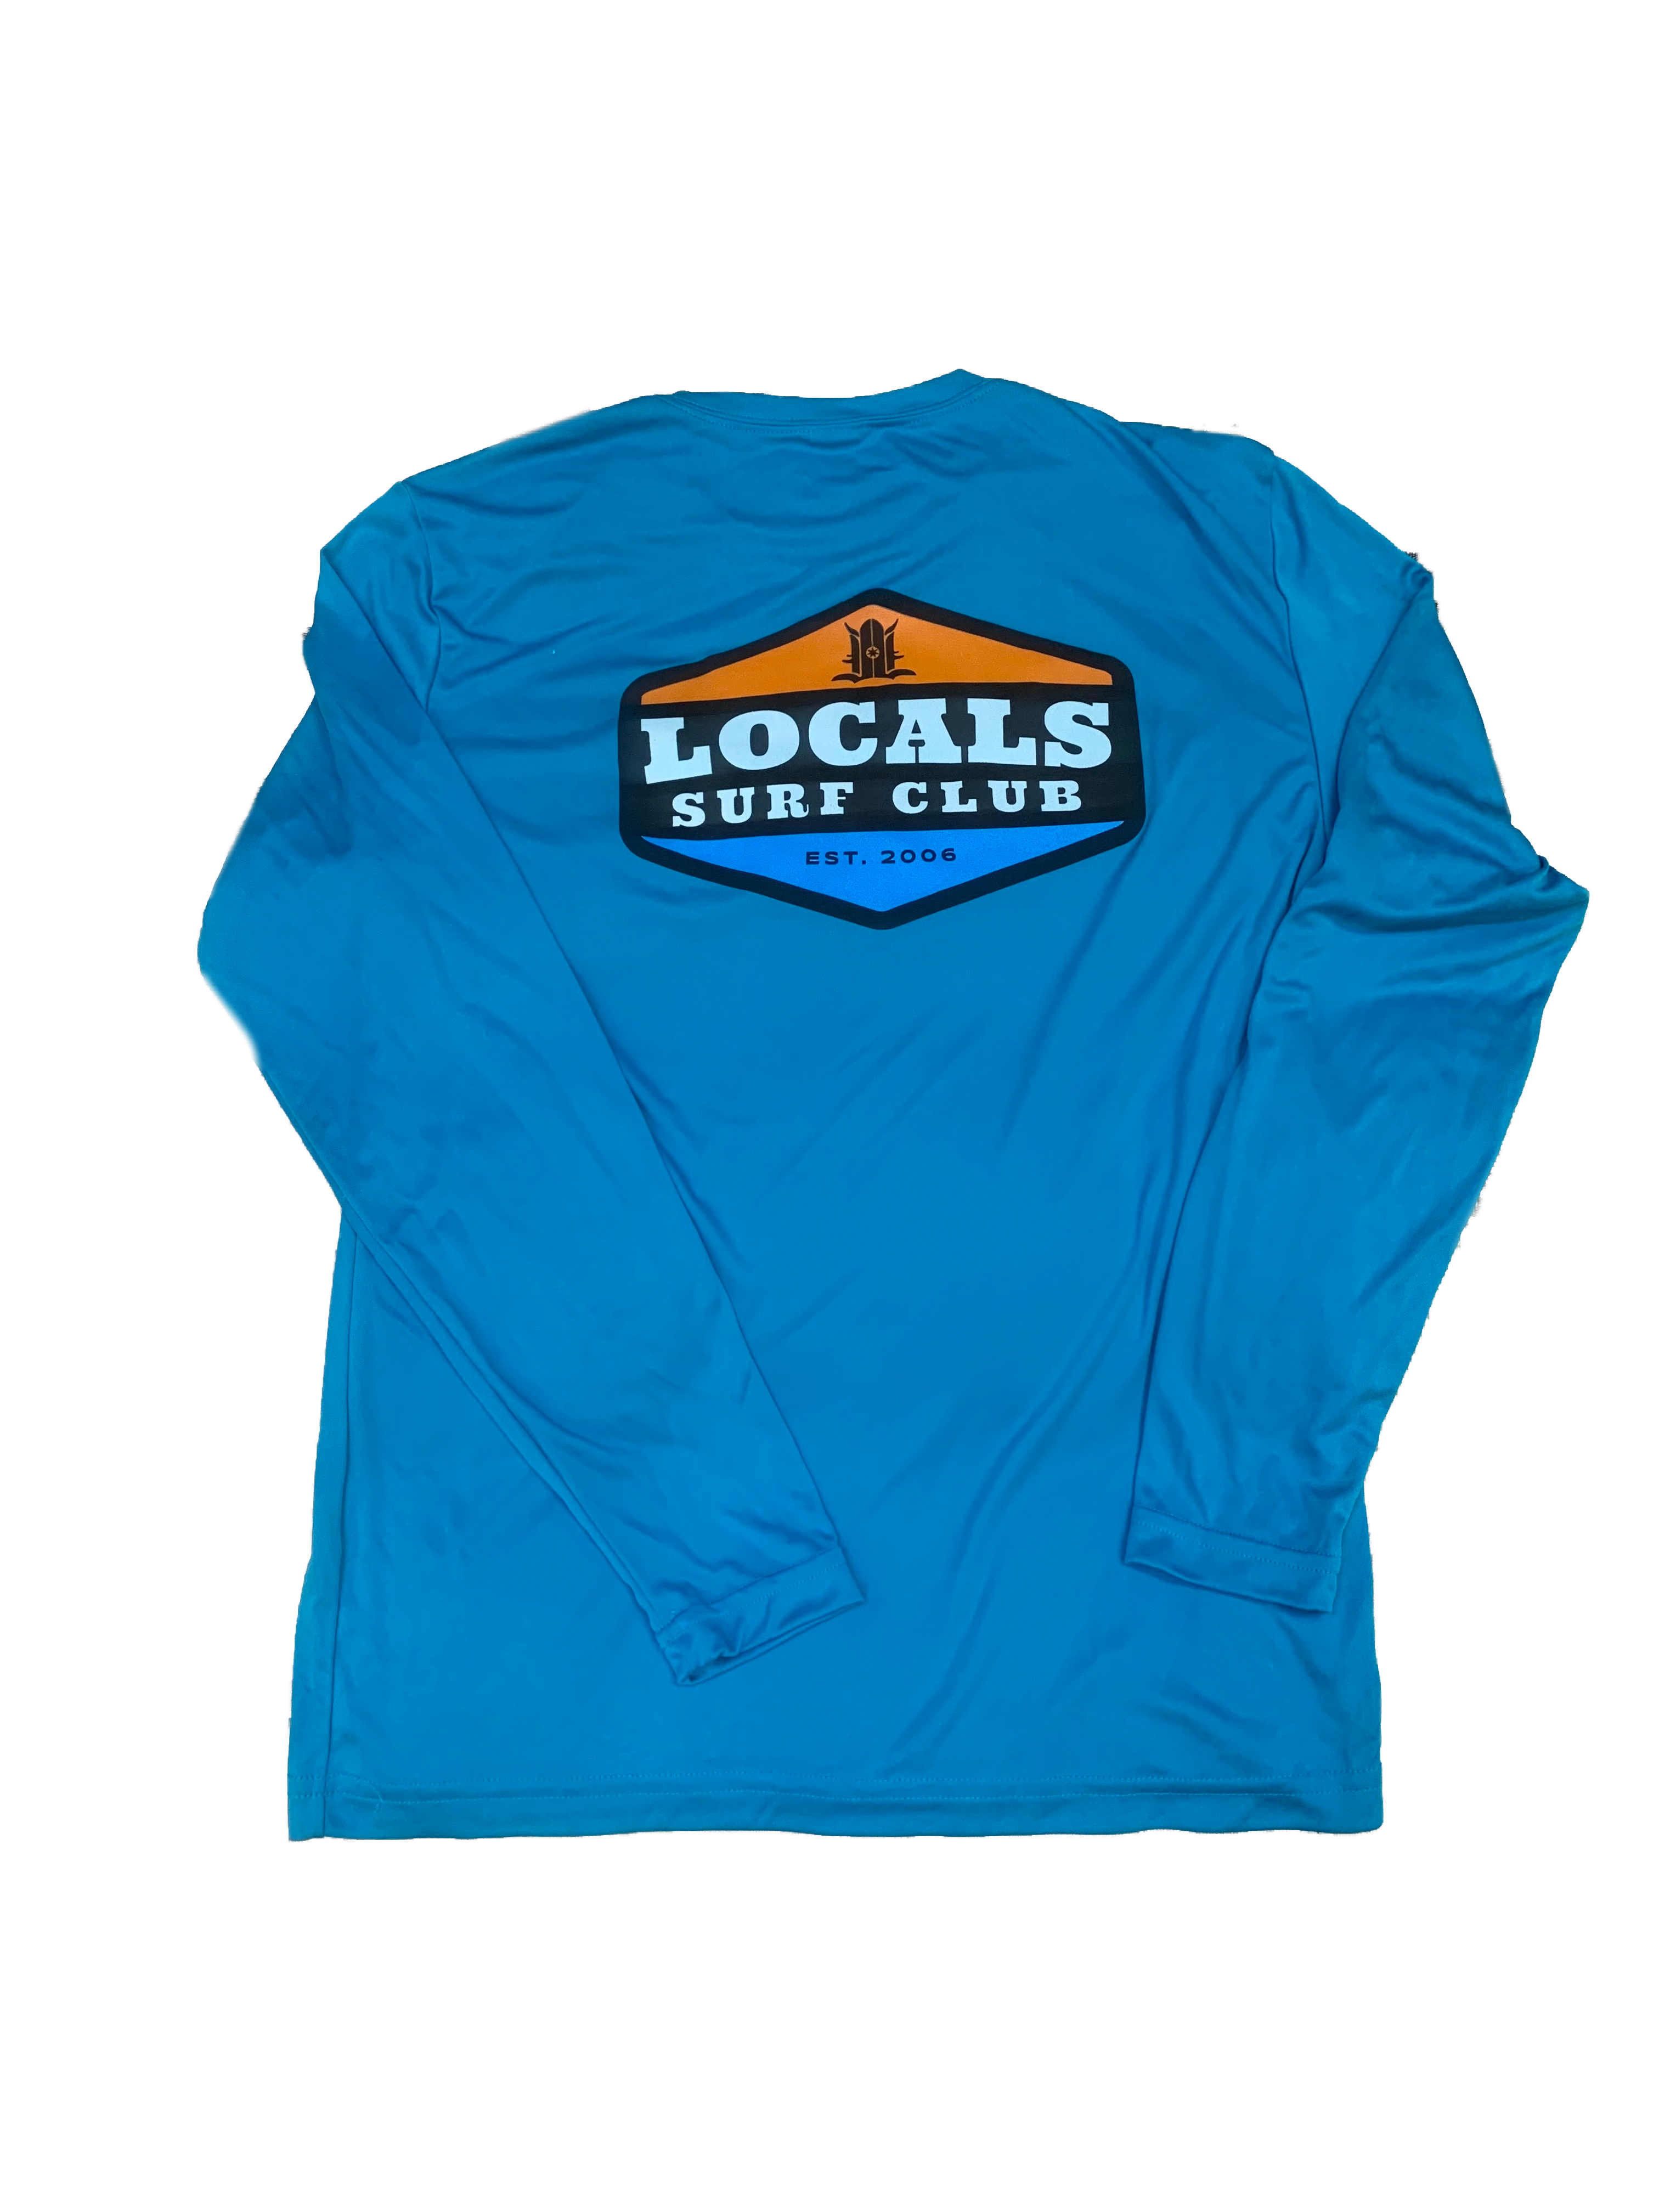 LOCALS SURF CLUB PATCH L/S PERFORMANCE TEE TURQUOISE